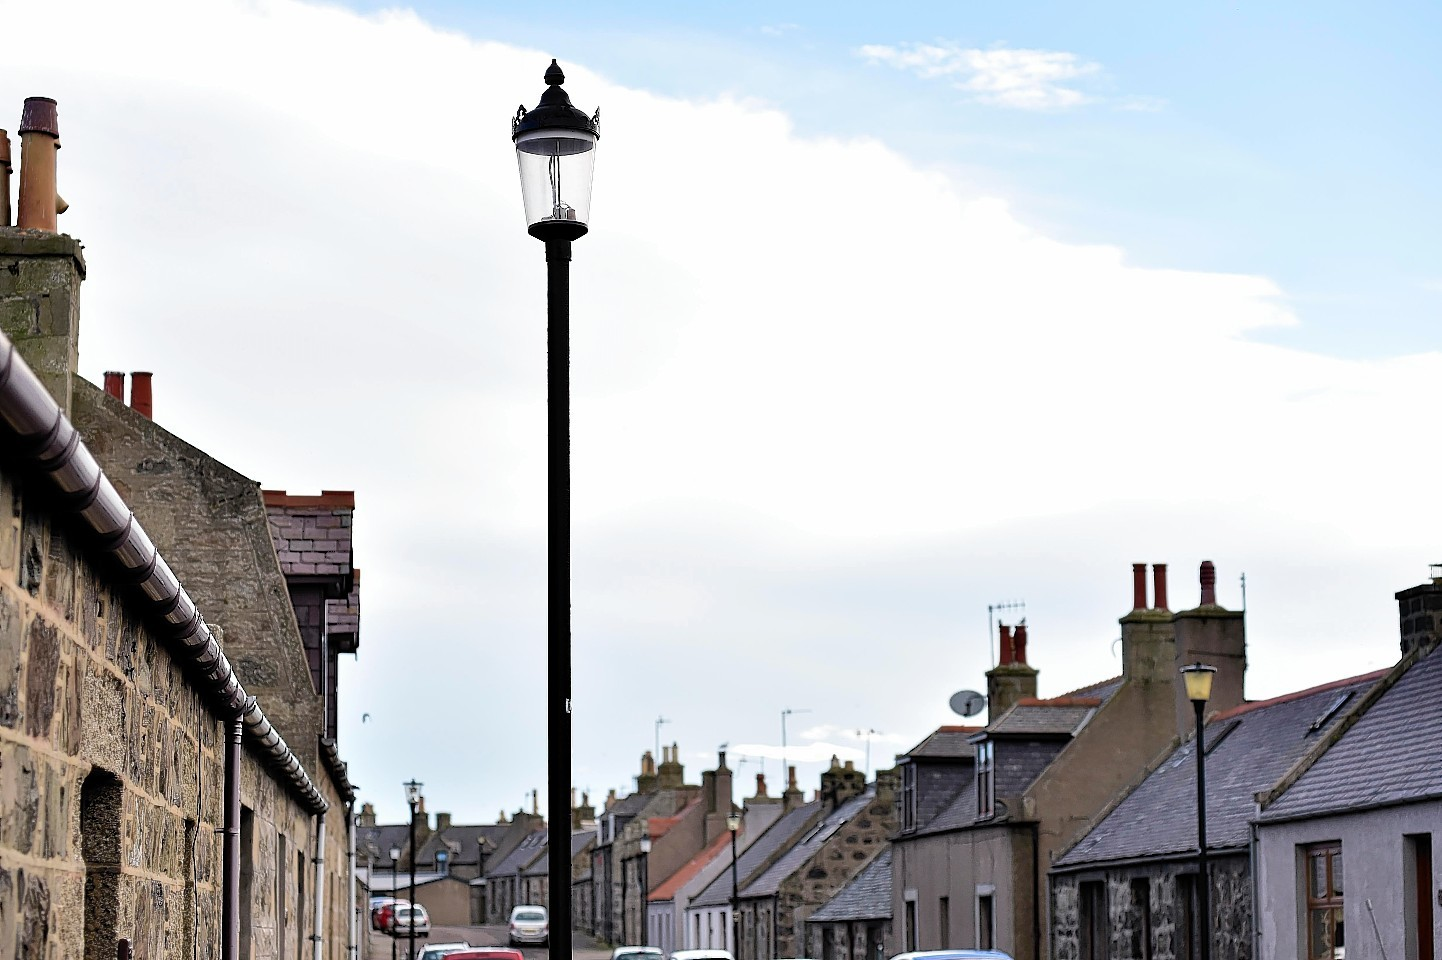 The lamp posts at Broadsea are set to be replaced